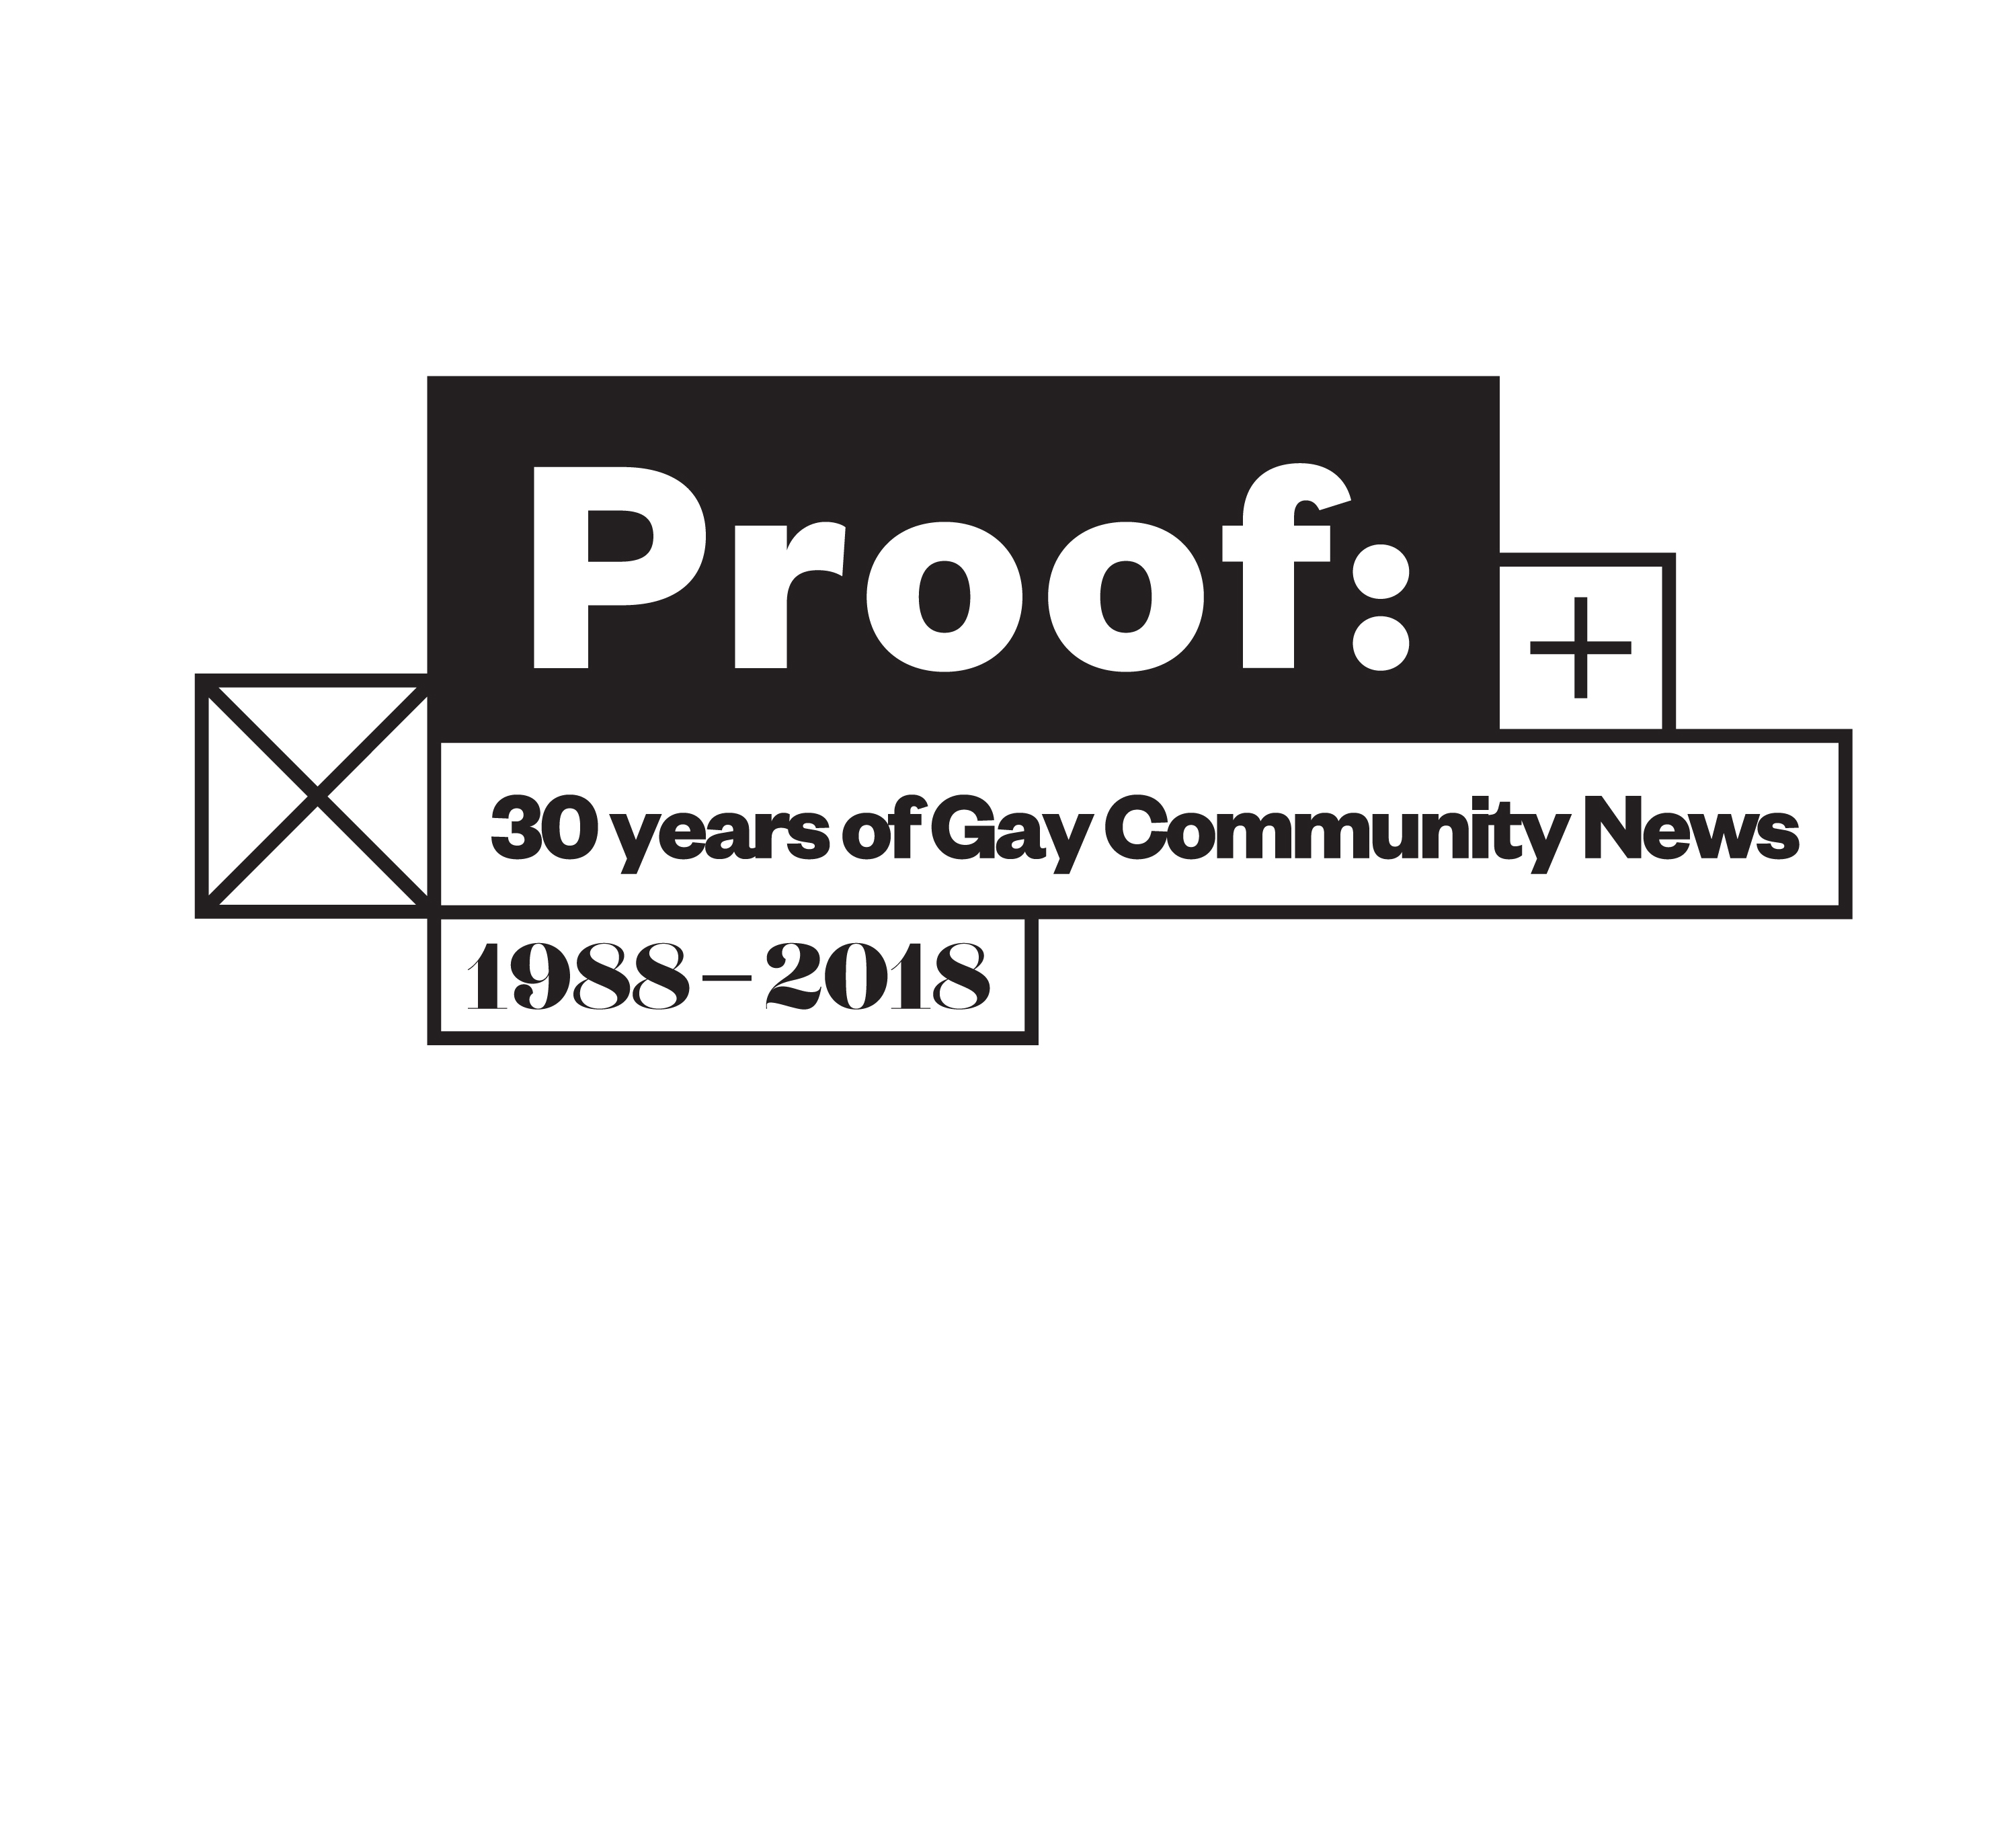 Cover image: Proof: 30 Years of Gay Community News